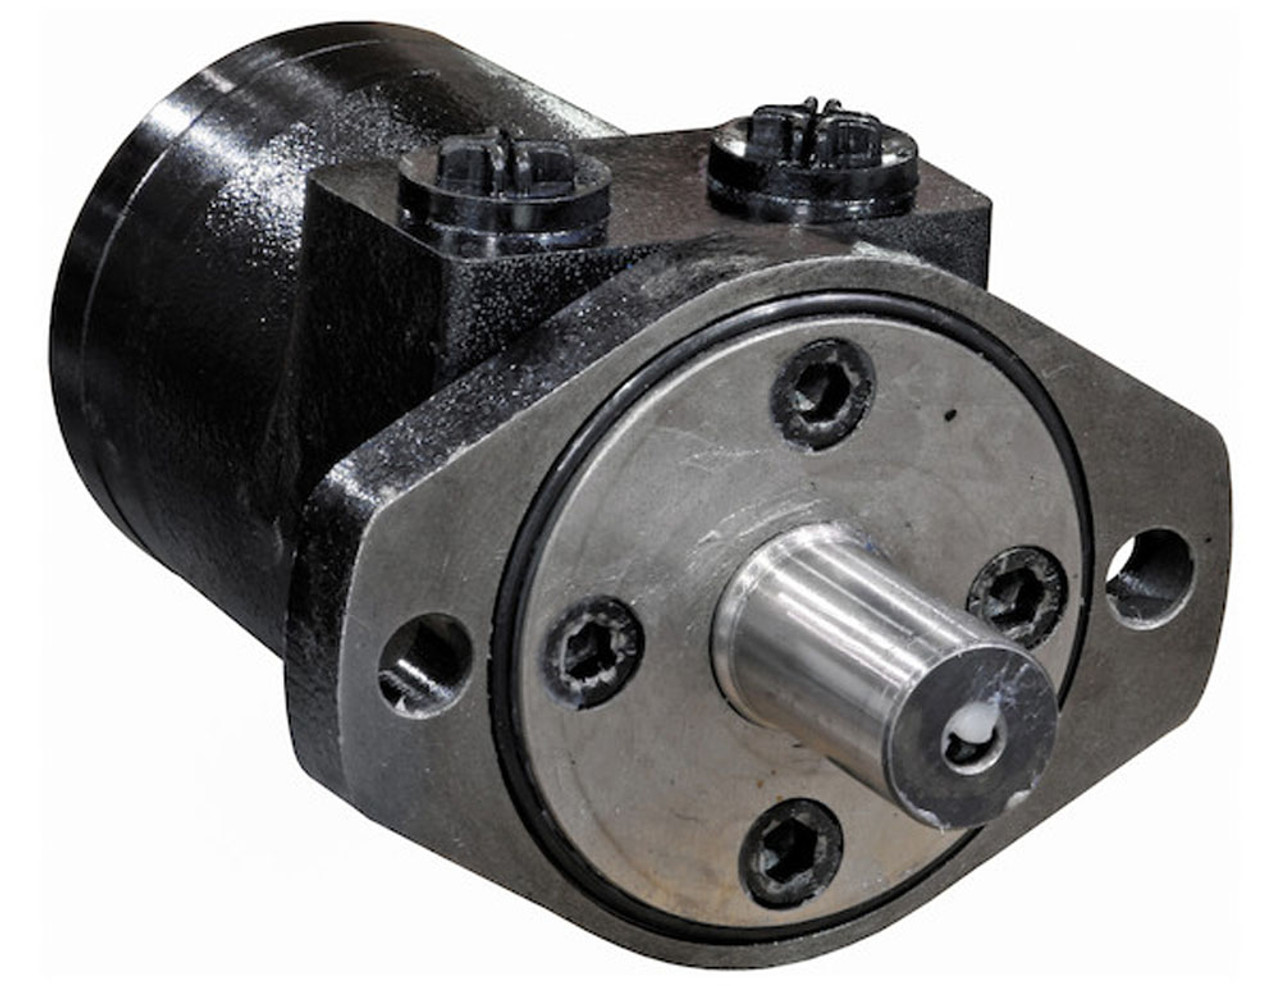 CM032P BUYERS SALTDOGG HYDRAULIC MOTOR WITH 2-BOLT MOUNT/NPT THREADS AND 7.3 CUBIC INCHES DISPLACEMENT